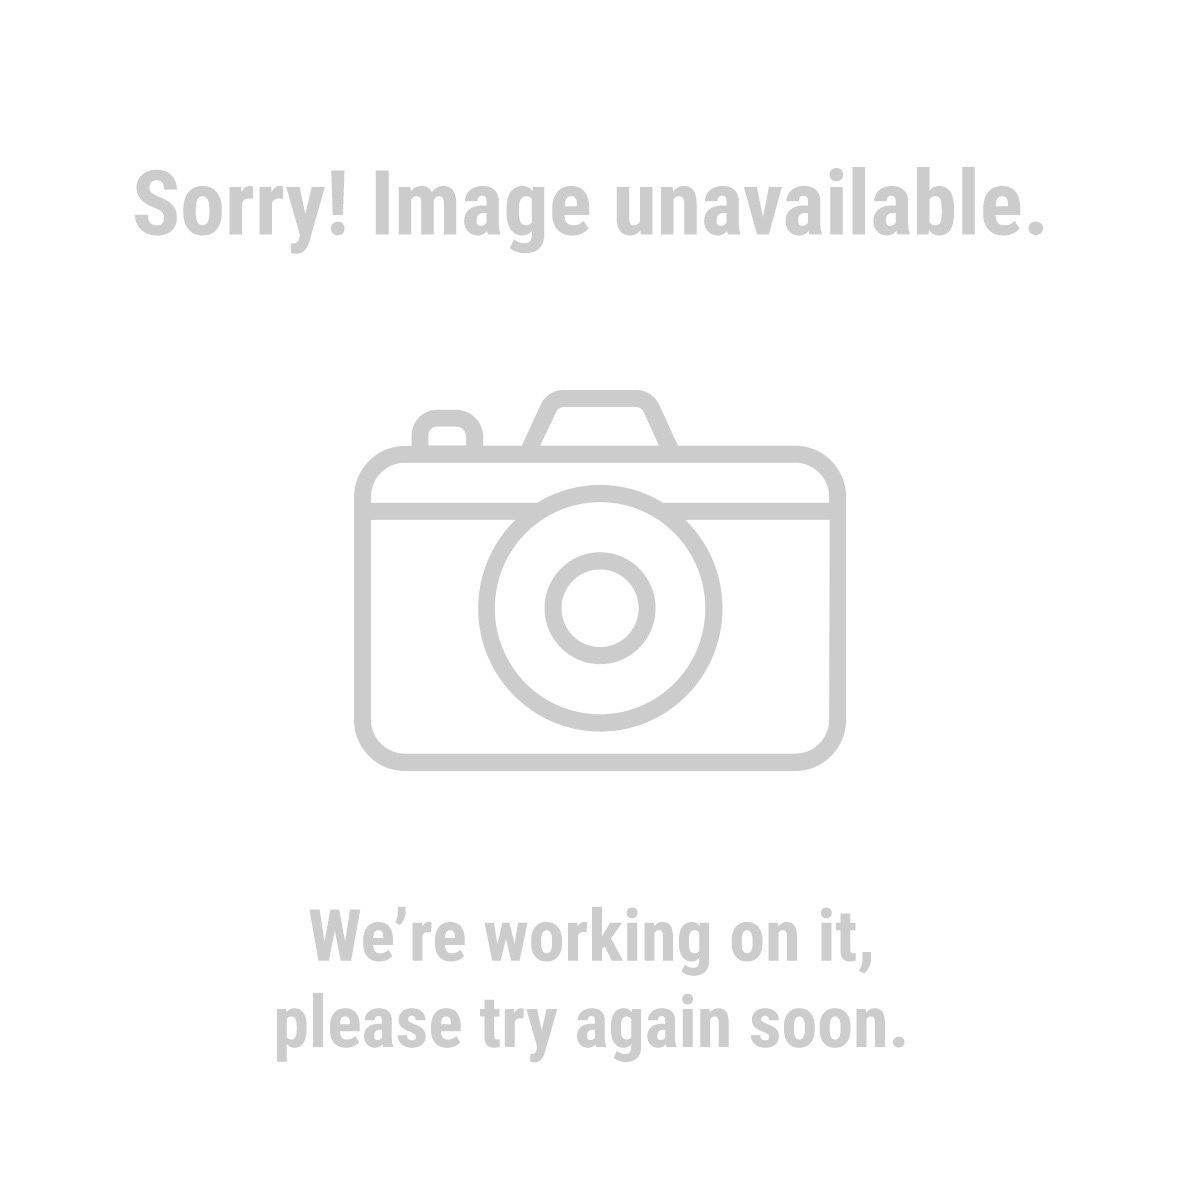 12 in 60t fine finish circular saw blade 96t finishing circular saw blade greentooth Image collections